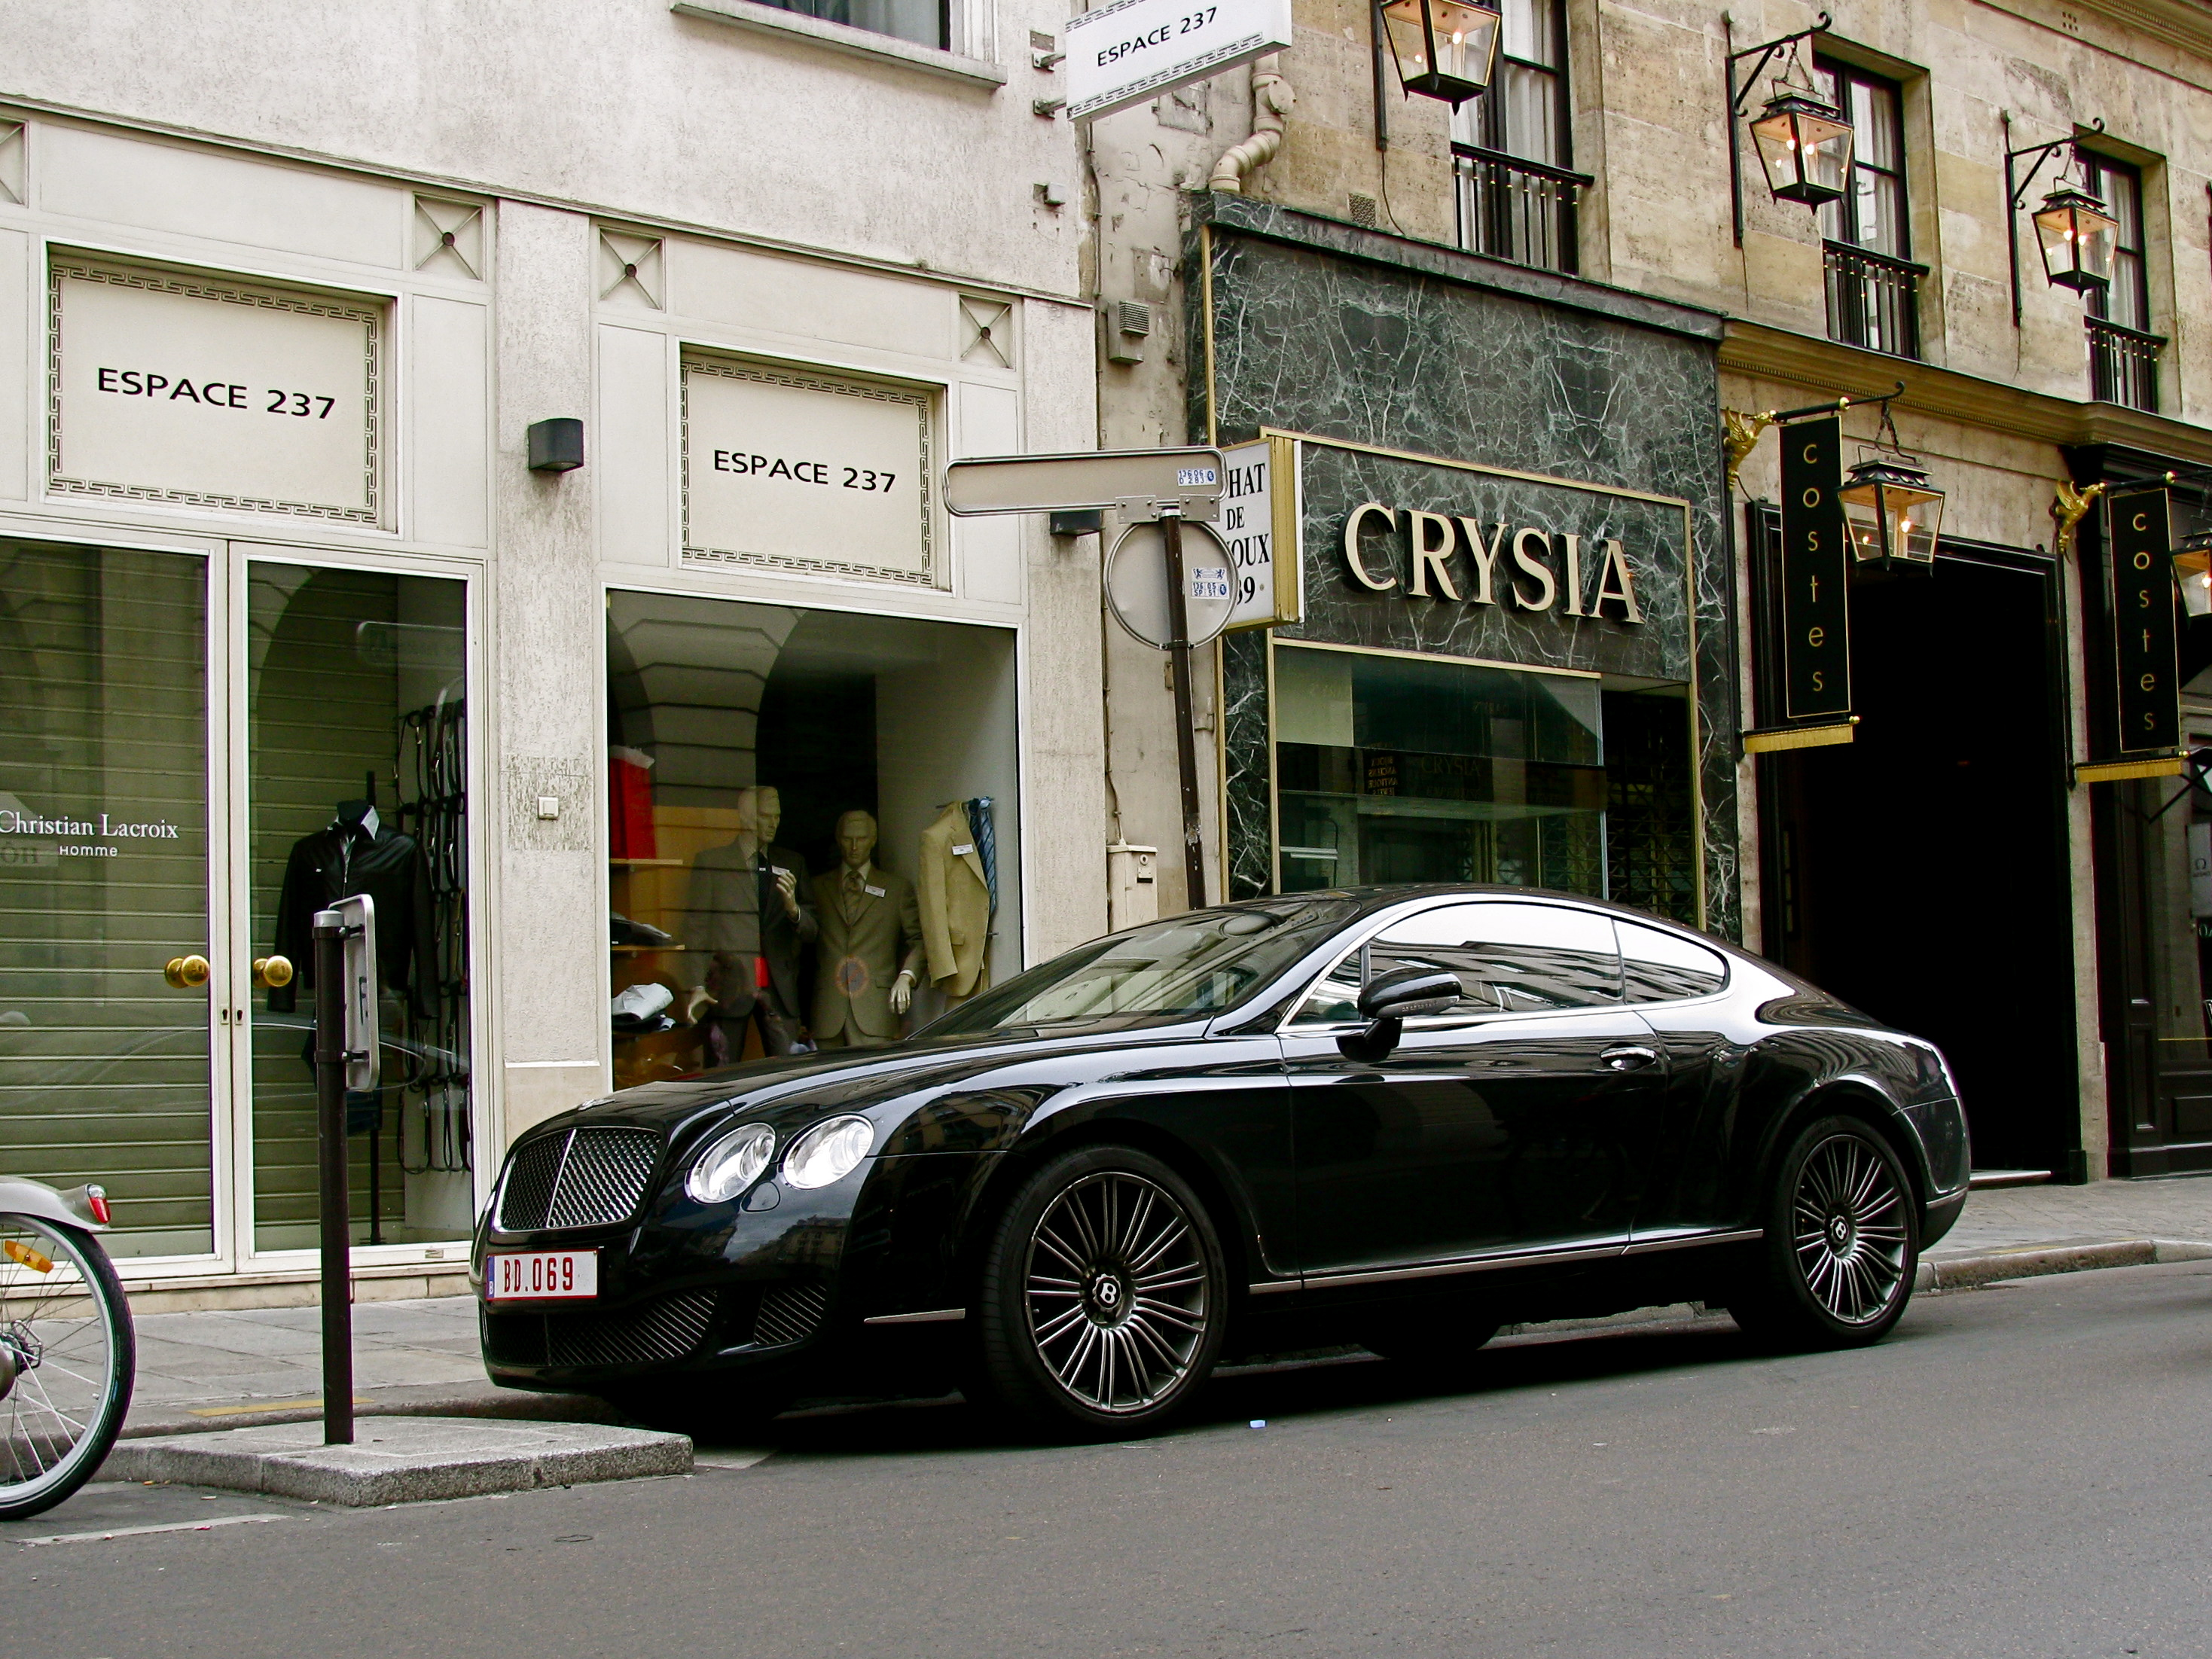 2008 Bentley Continental Gt Speed #9